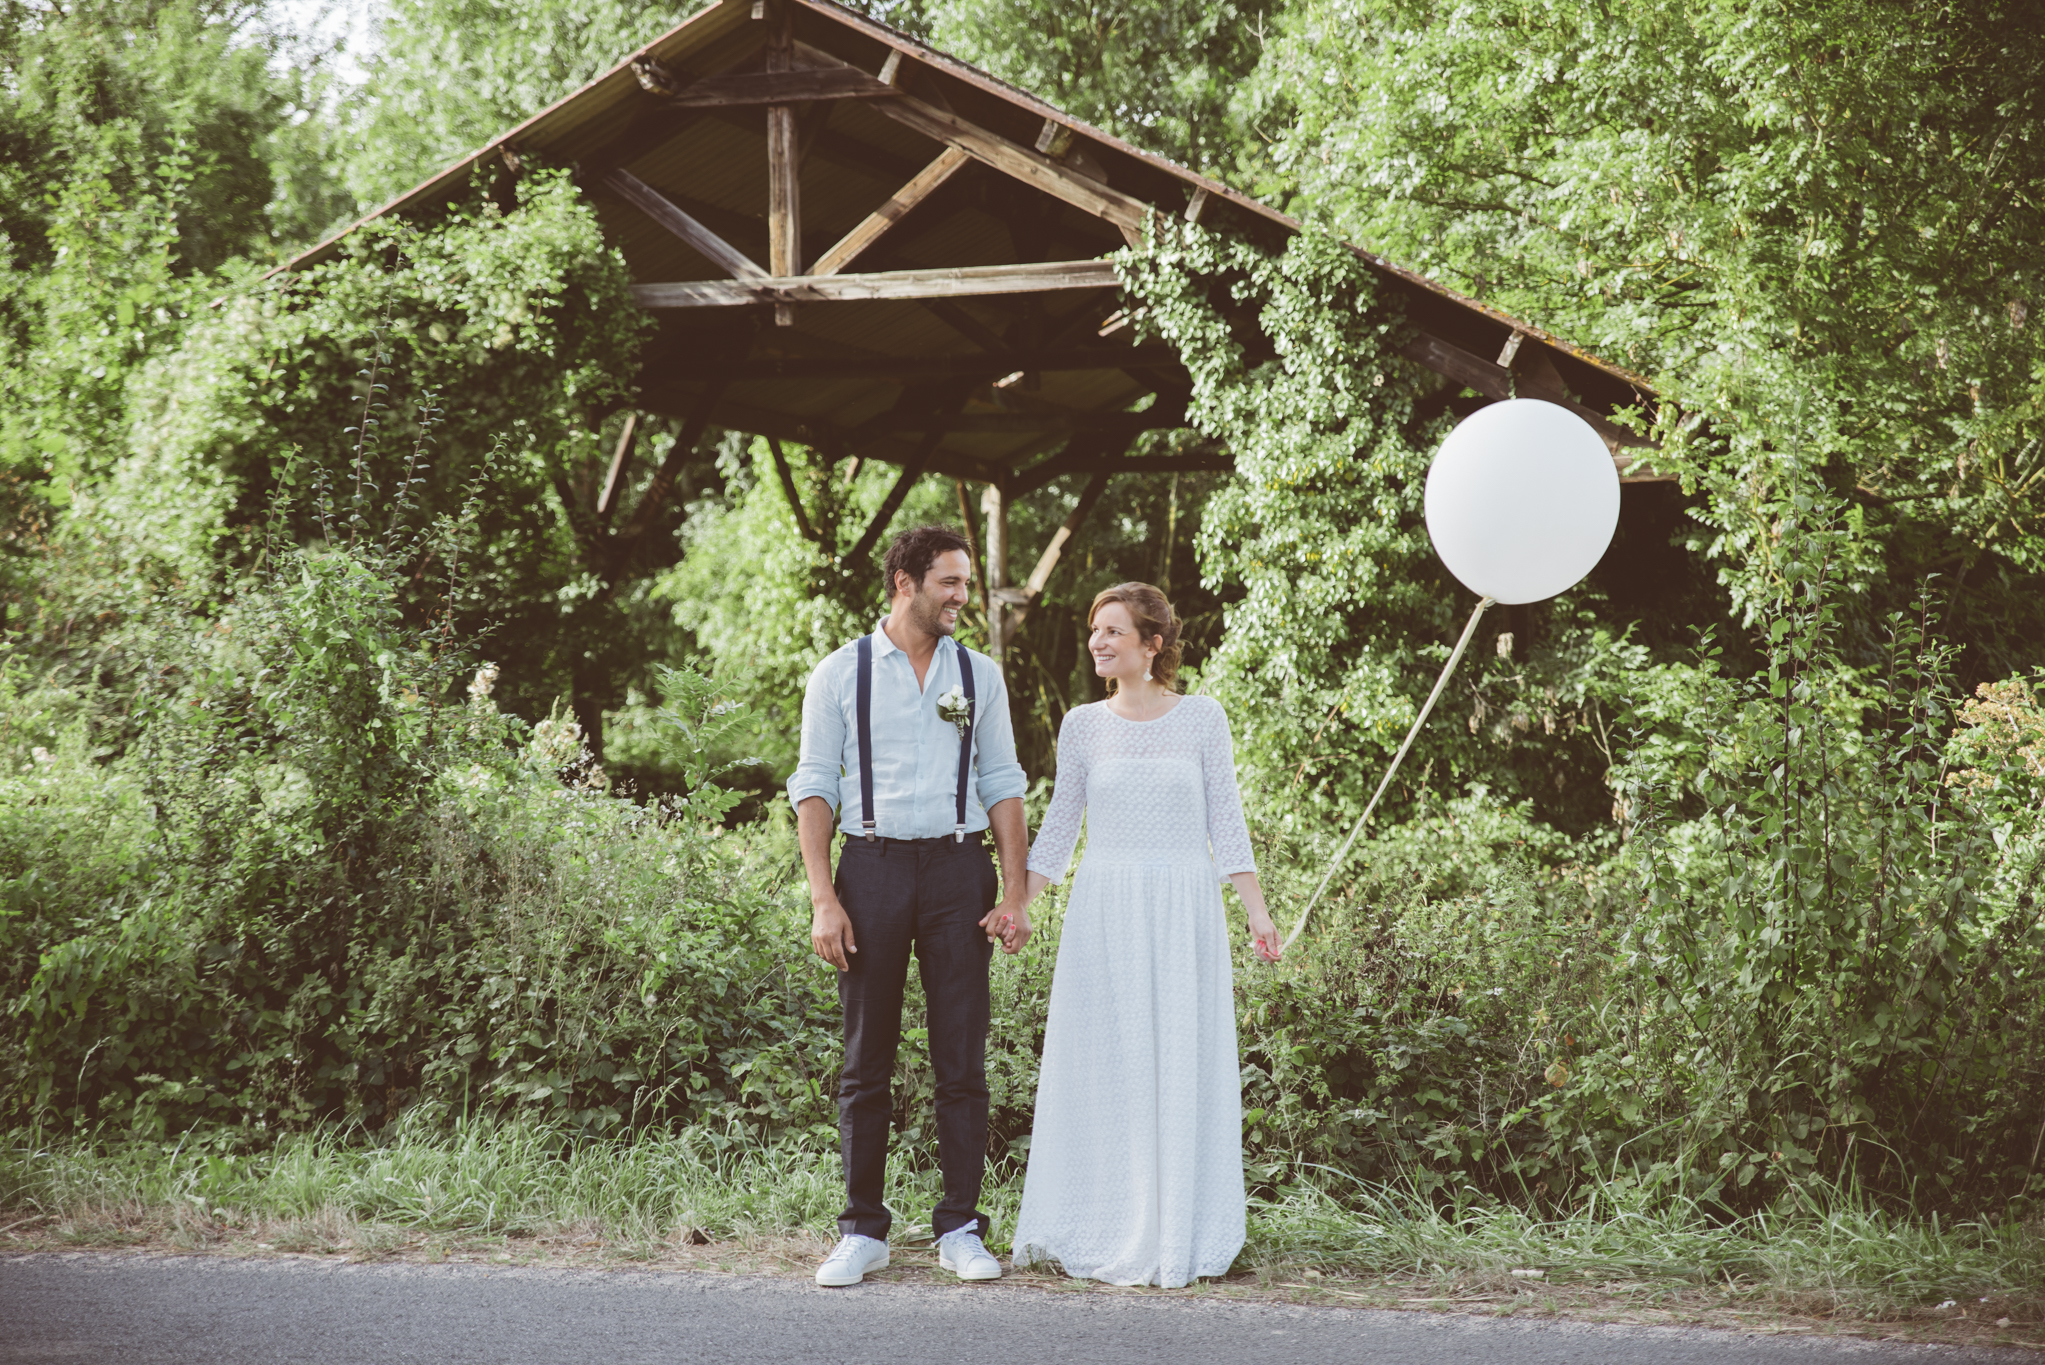 photo couple ballon géant mariage eco responsable nature champetre vintage wedding planner artis evenement